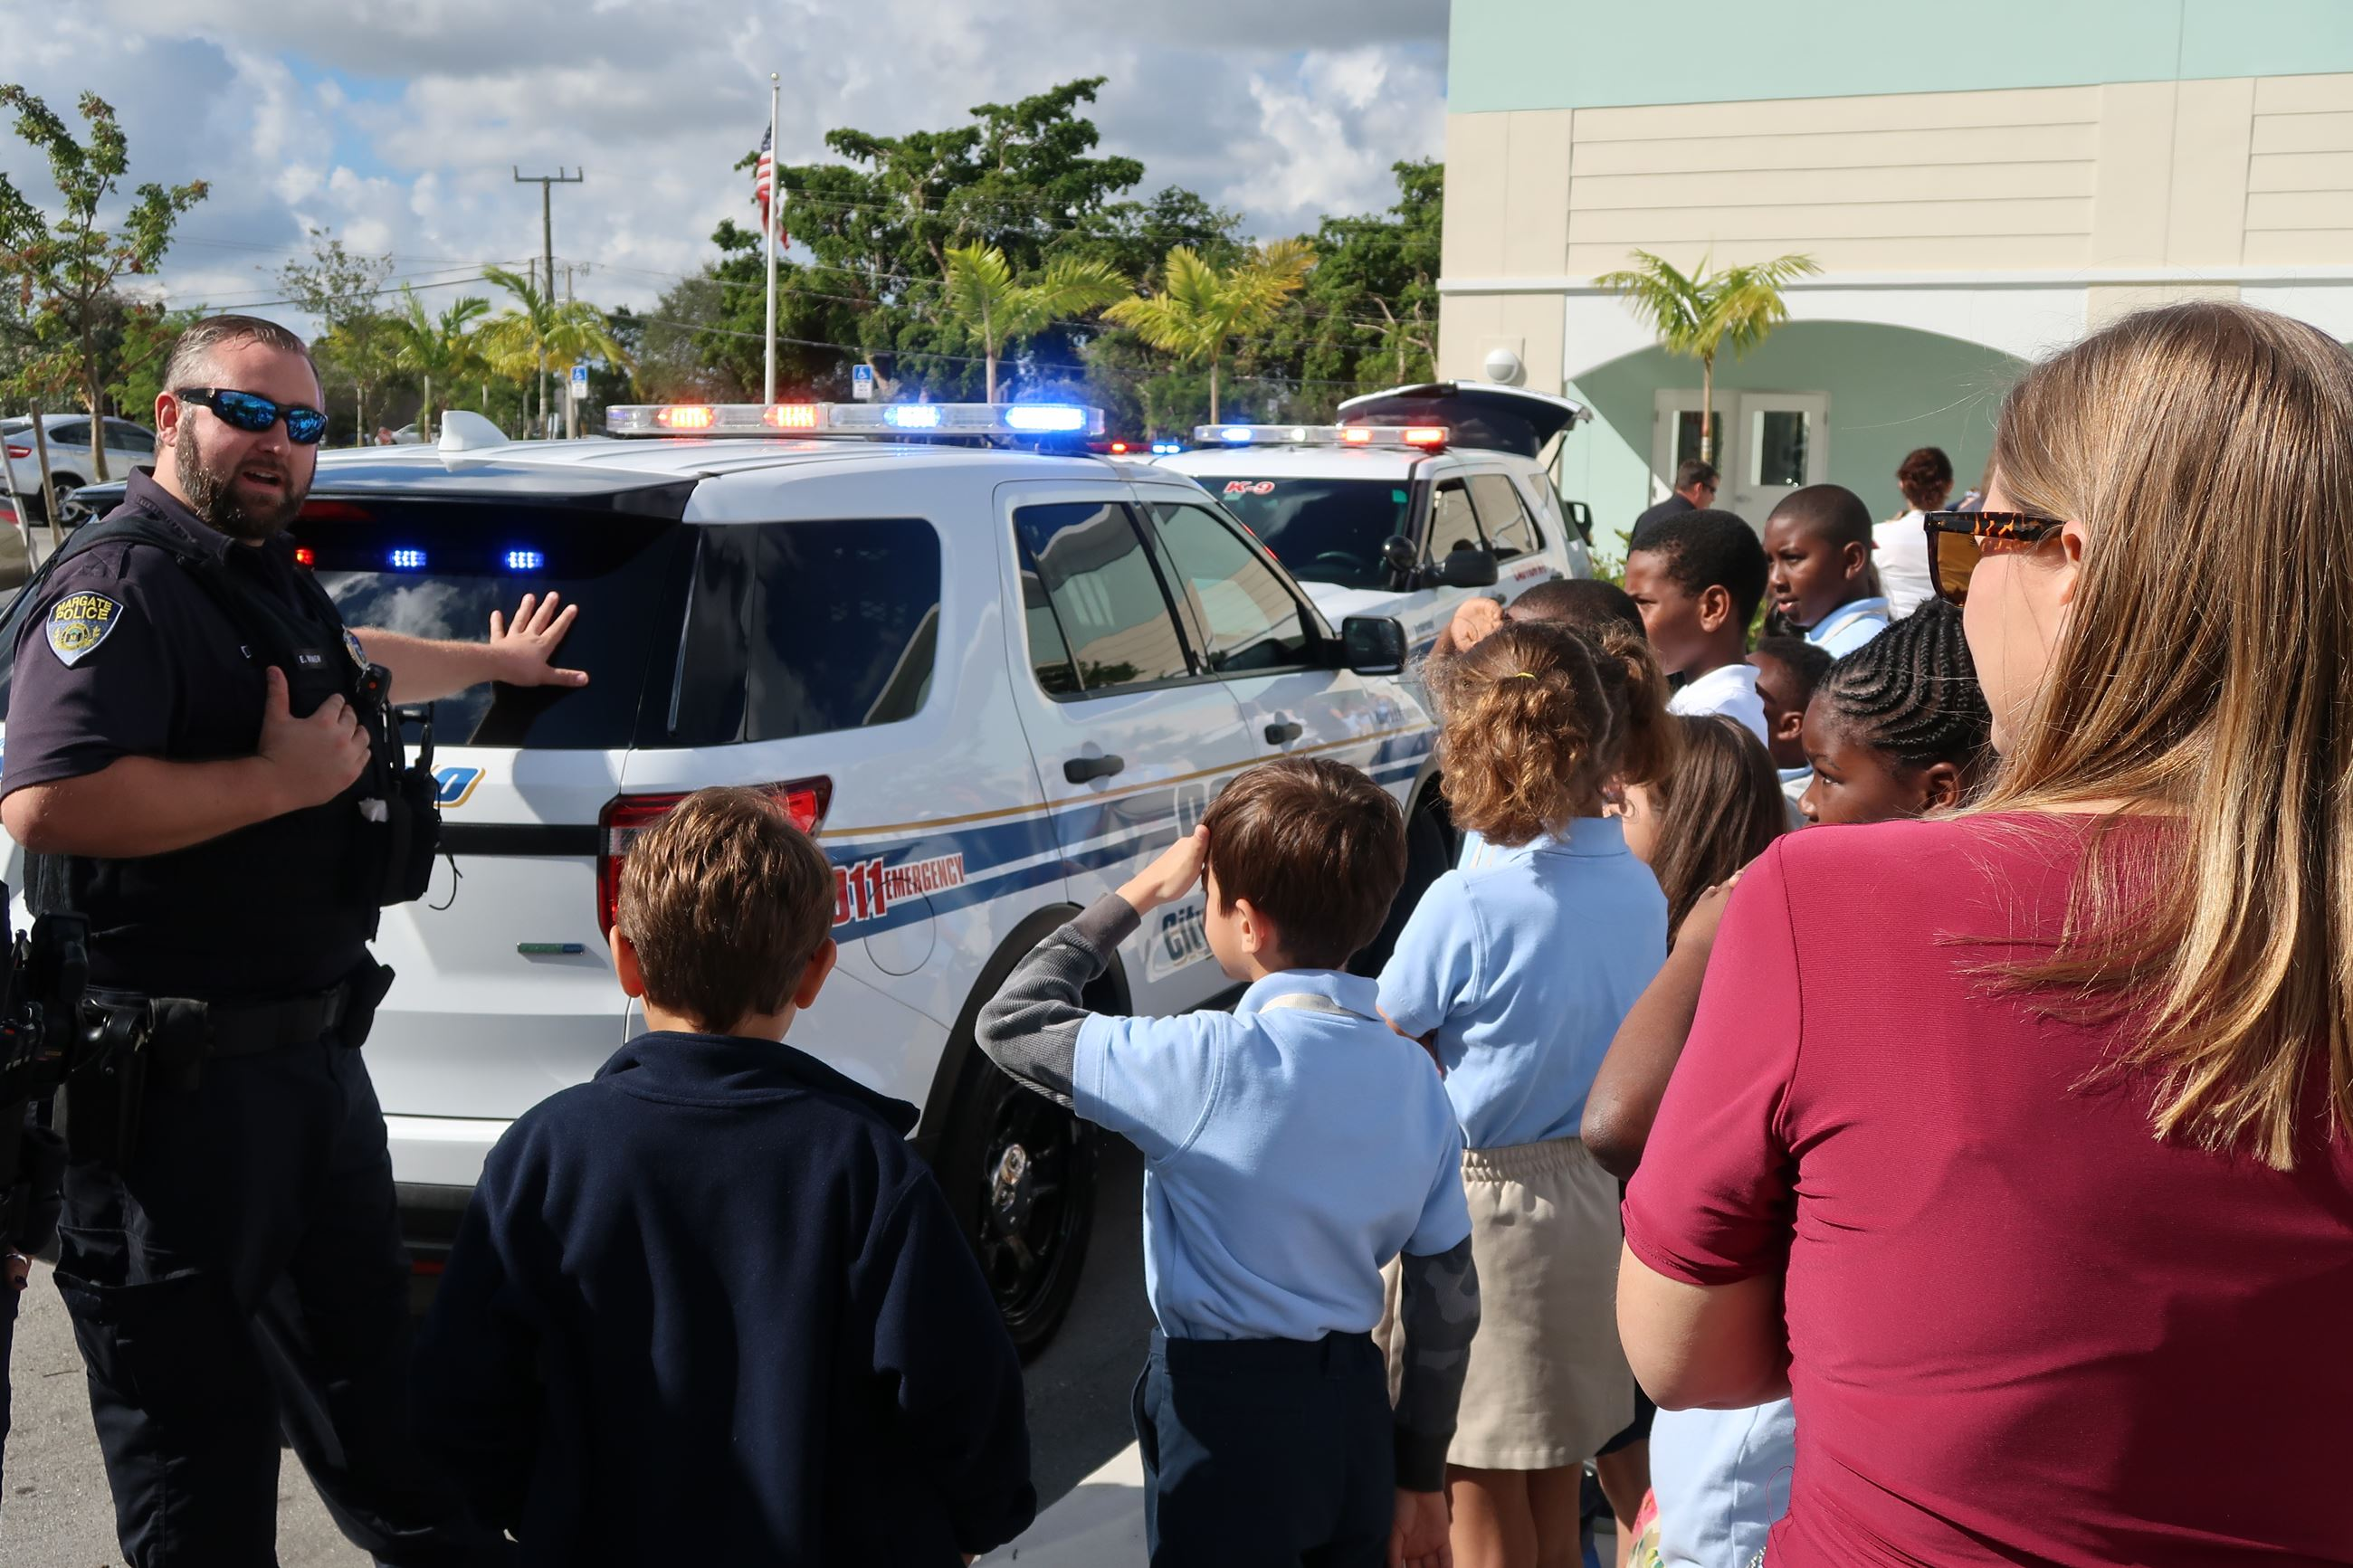 Image of Officer Womer and students